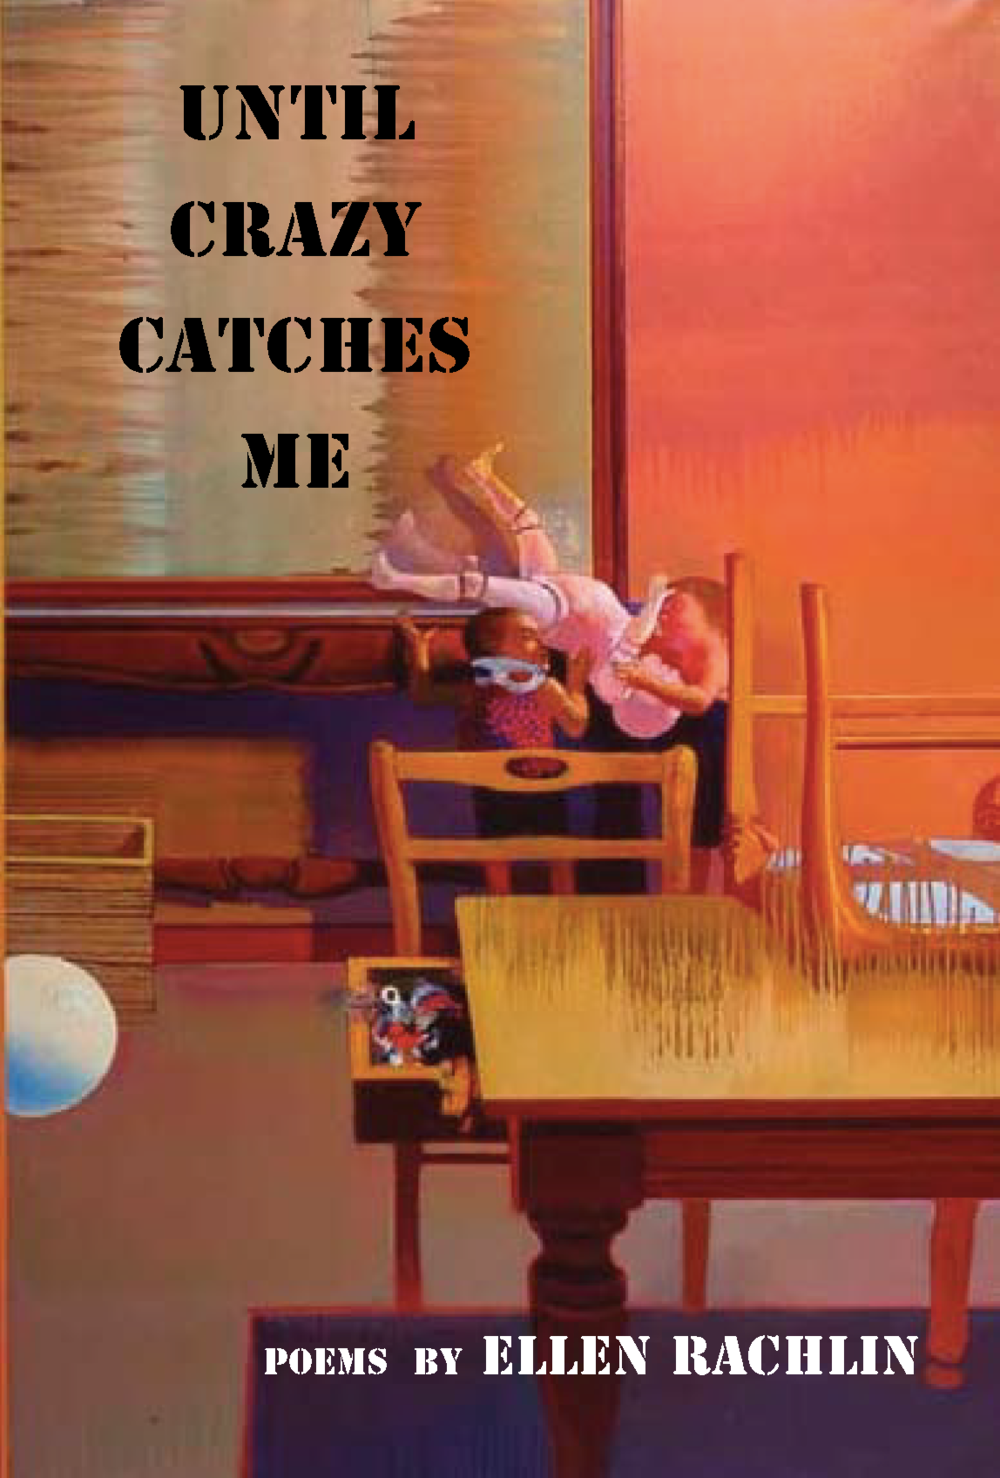 Until Crazy Catches Me